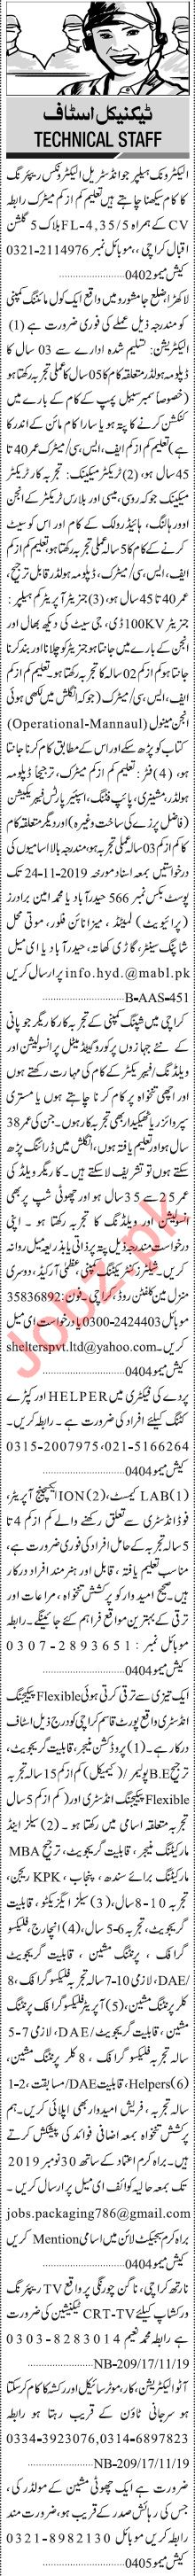 Jang Sunday Classified Ads 17th Nov 2019 for Technical Staff